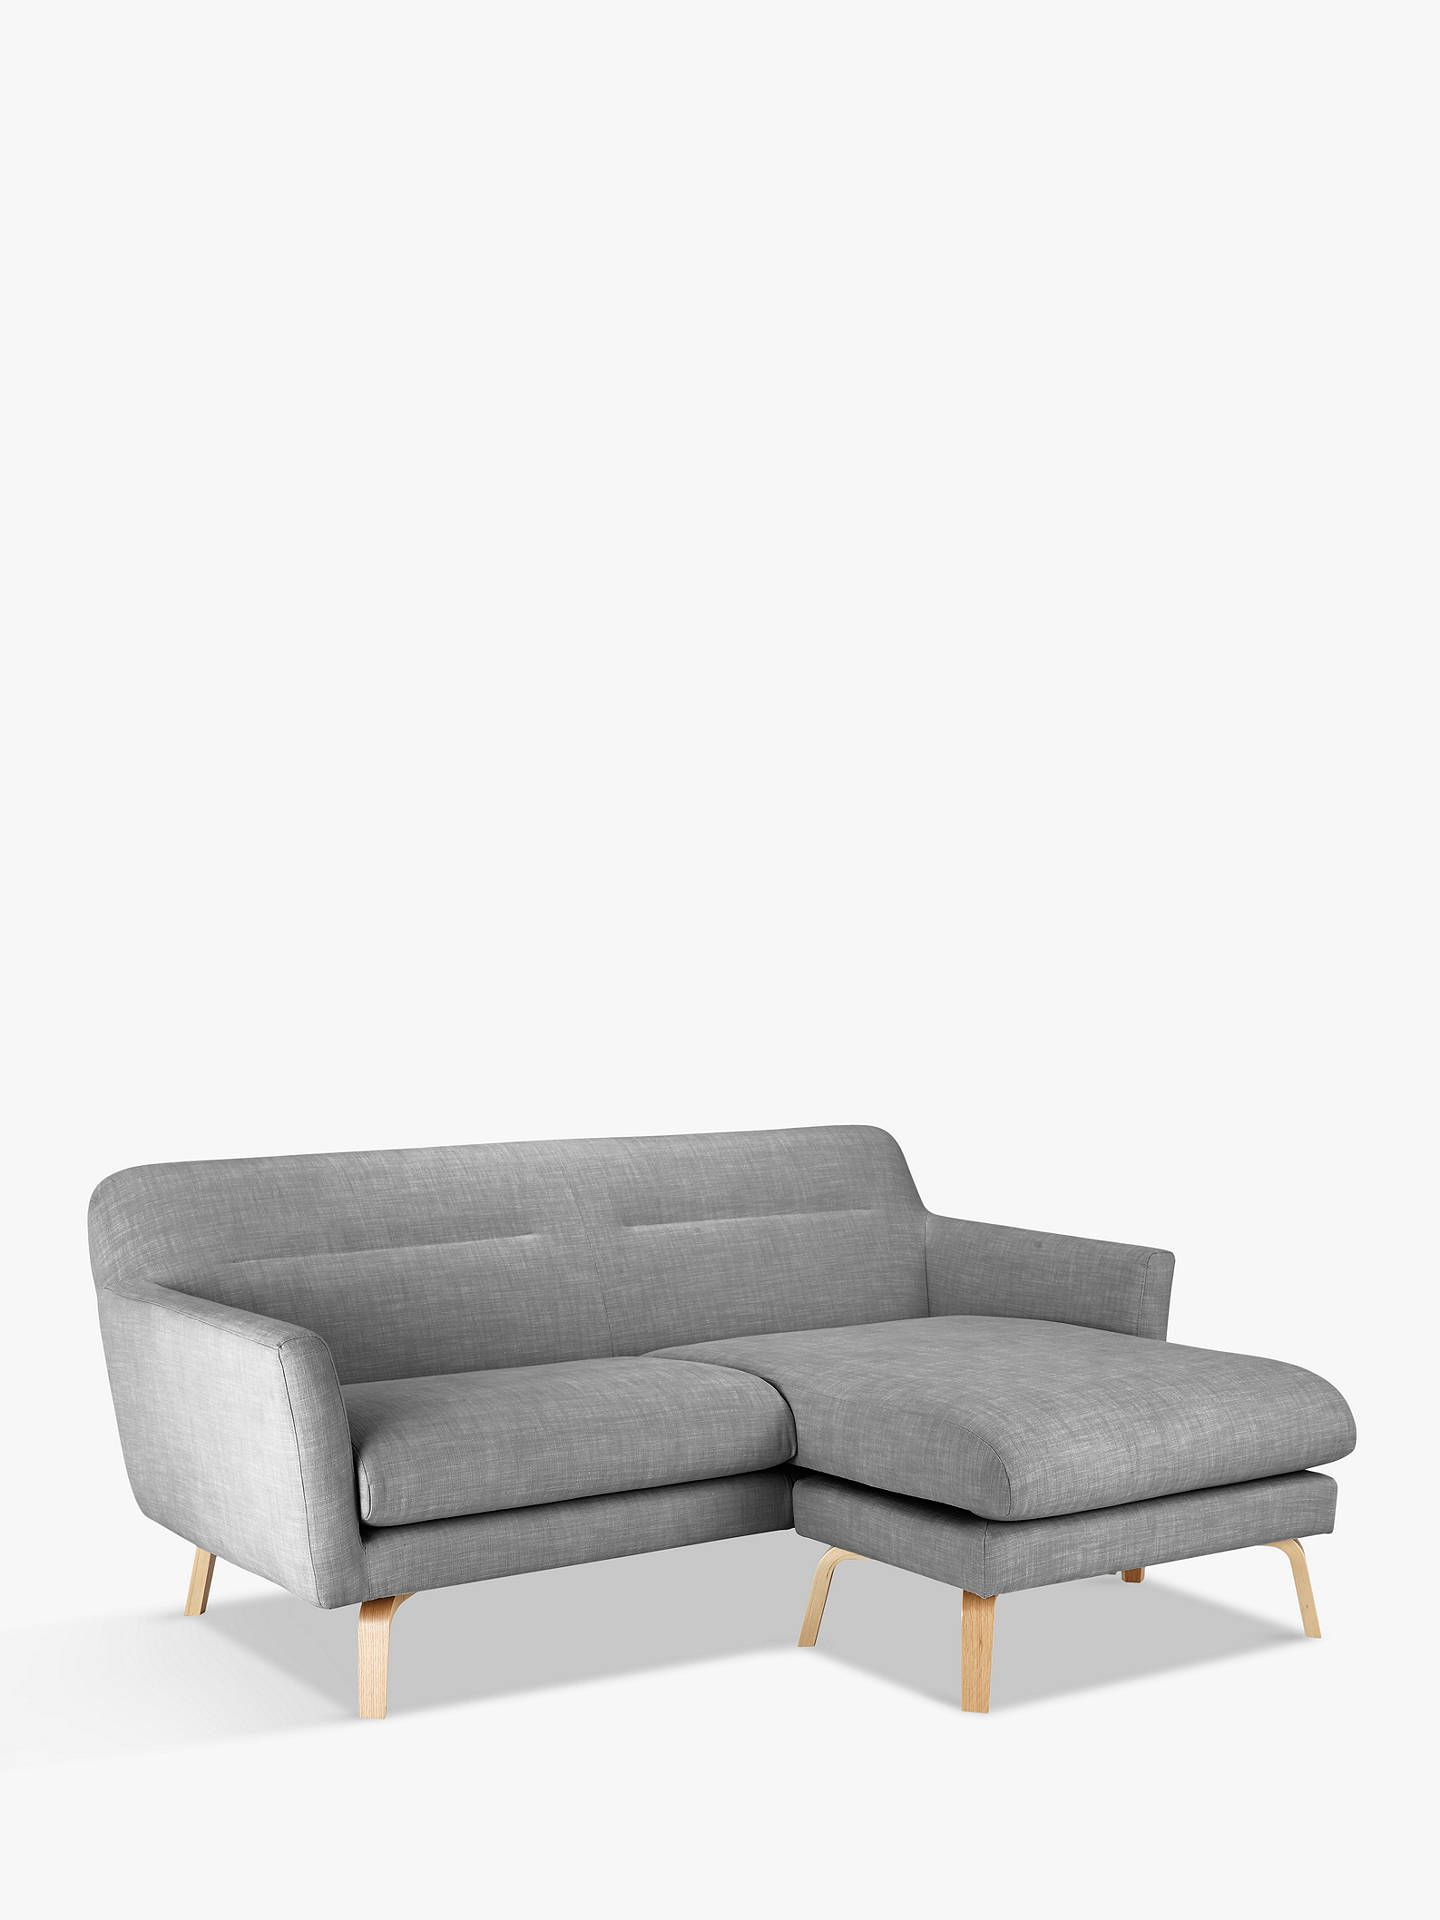 Designer Sofas John Lewis House By John Lewis Archie Ii Chaise End Unit In 2019 Lounge